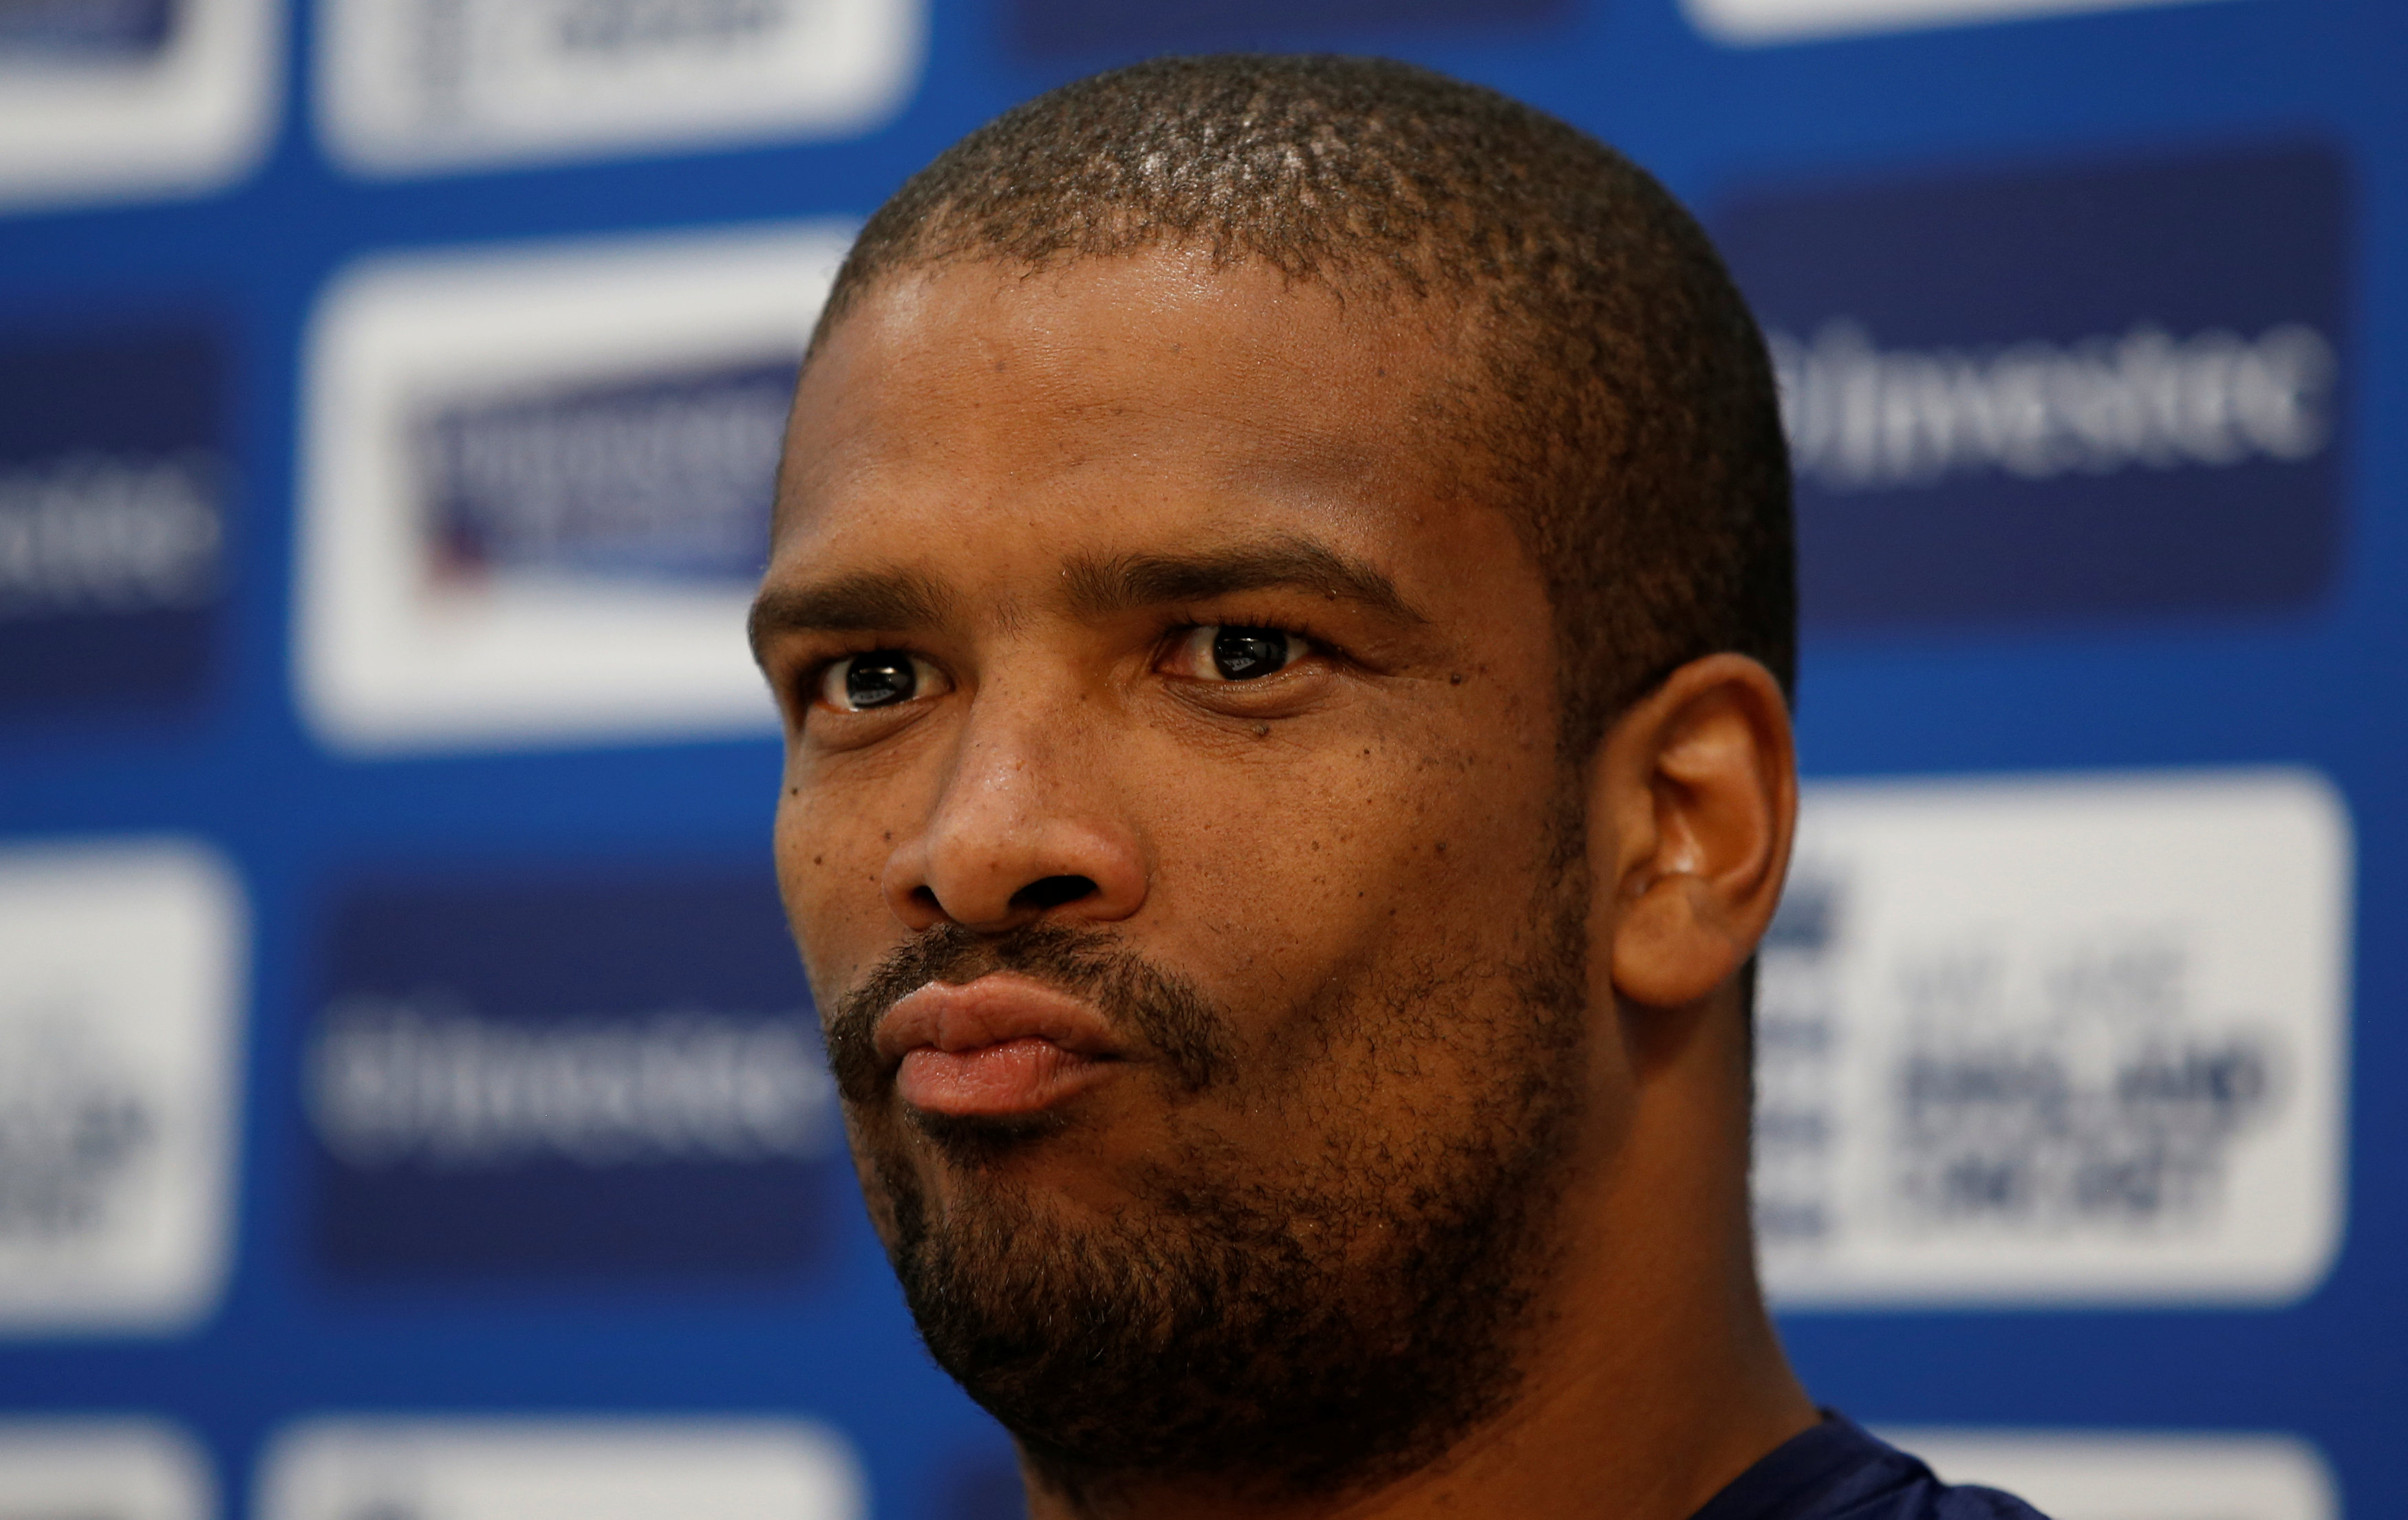 Vernon Philander took some questions ahead of the 2nd Test and during it, he had all the answers.